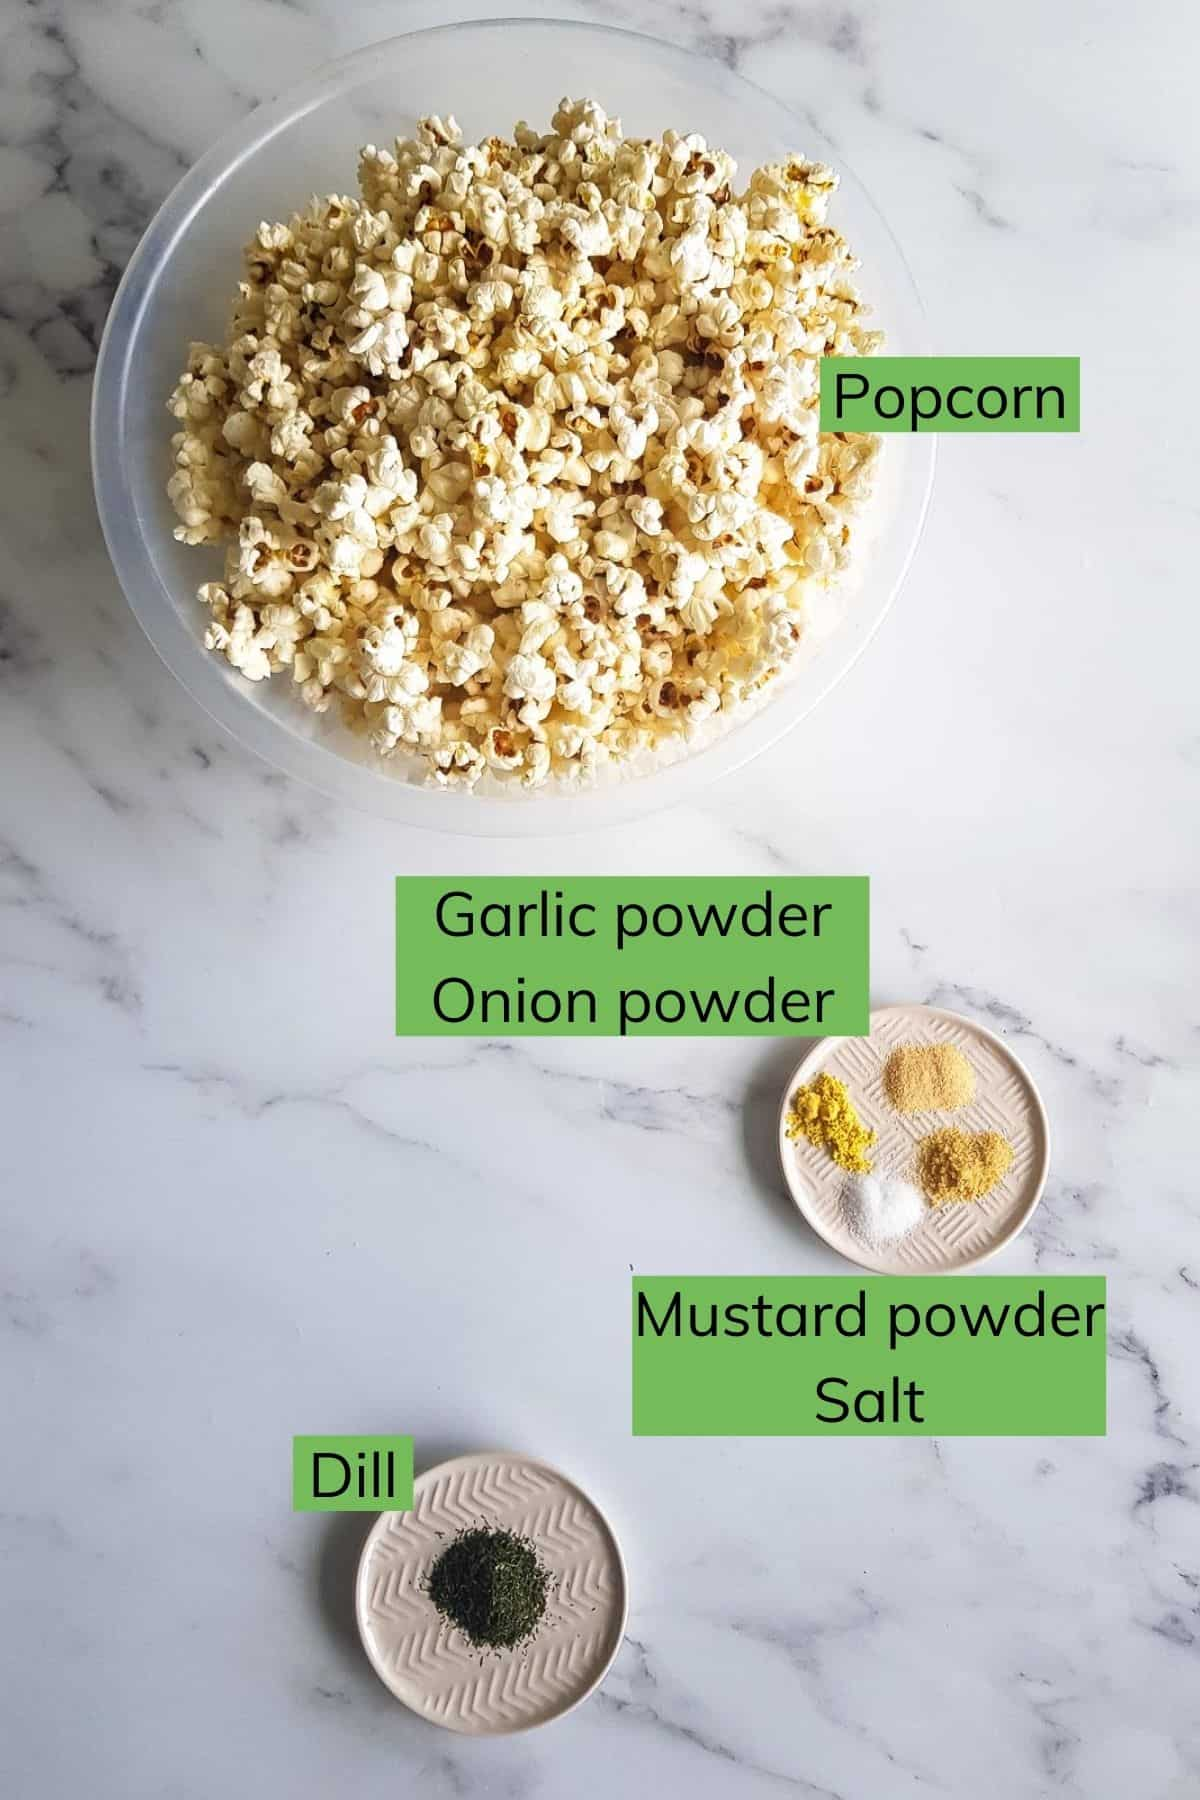 The ingredients for dill pickle popcorn laid out on a table.